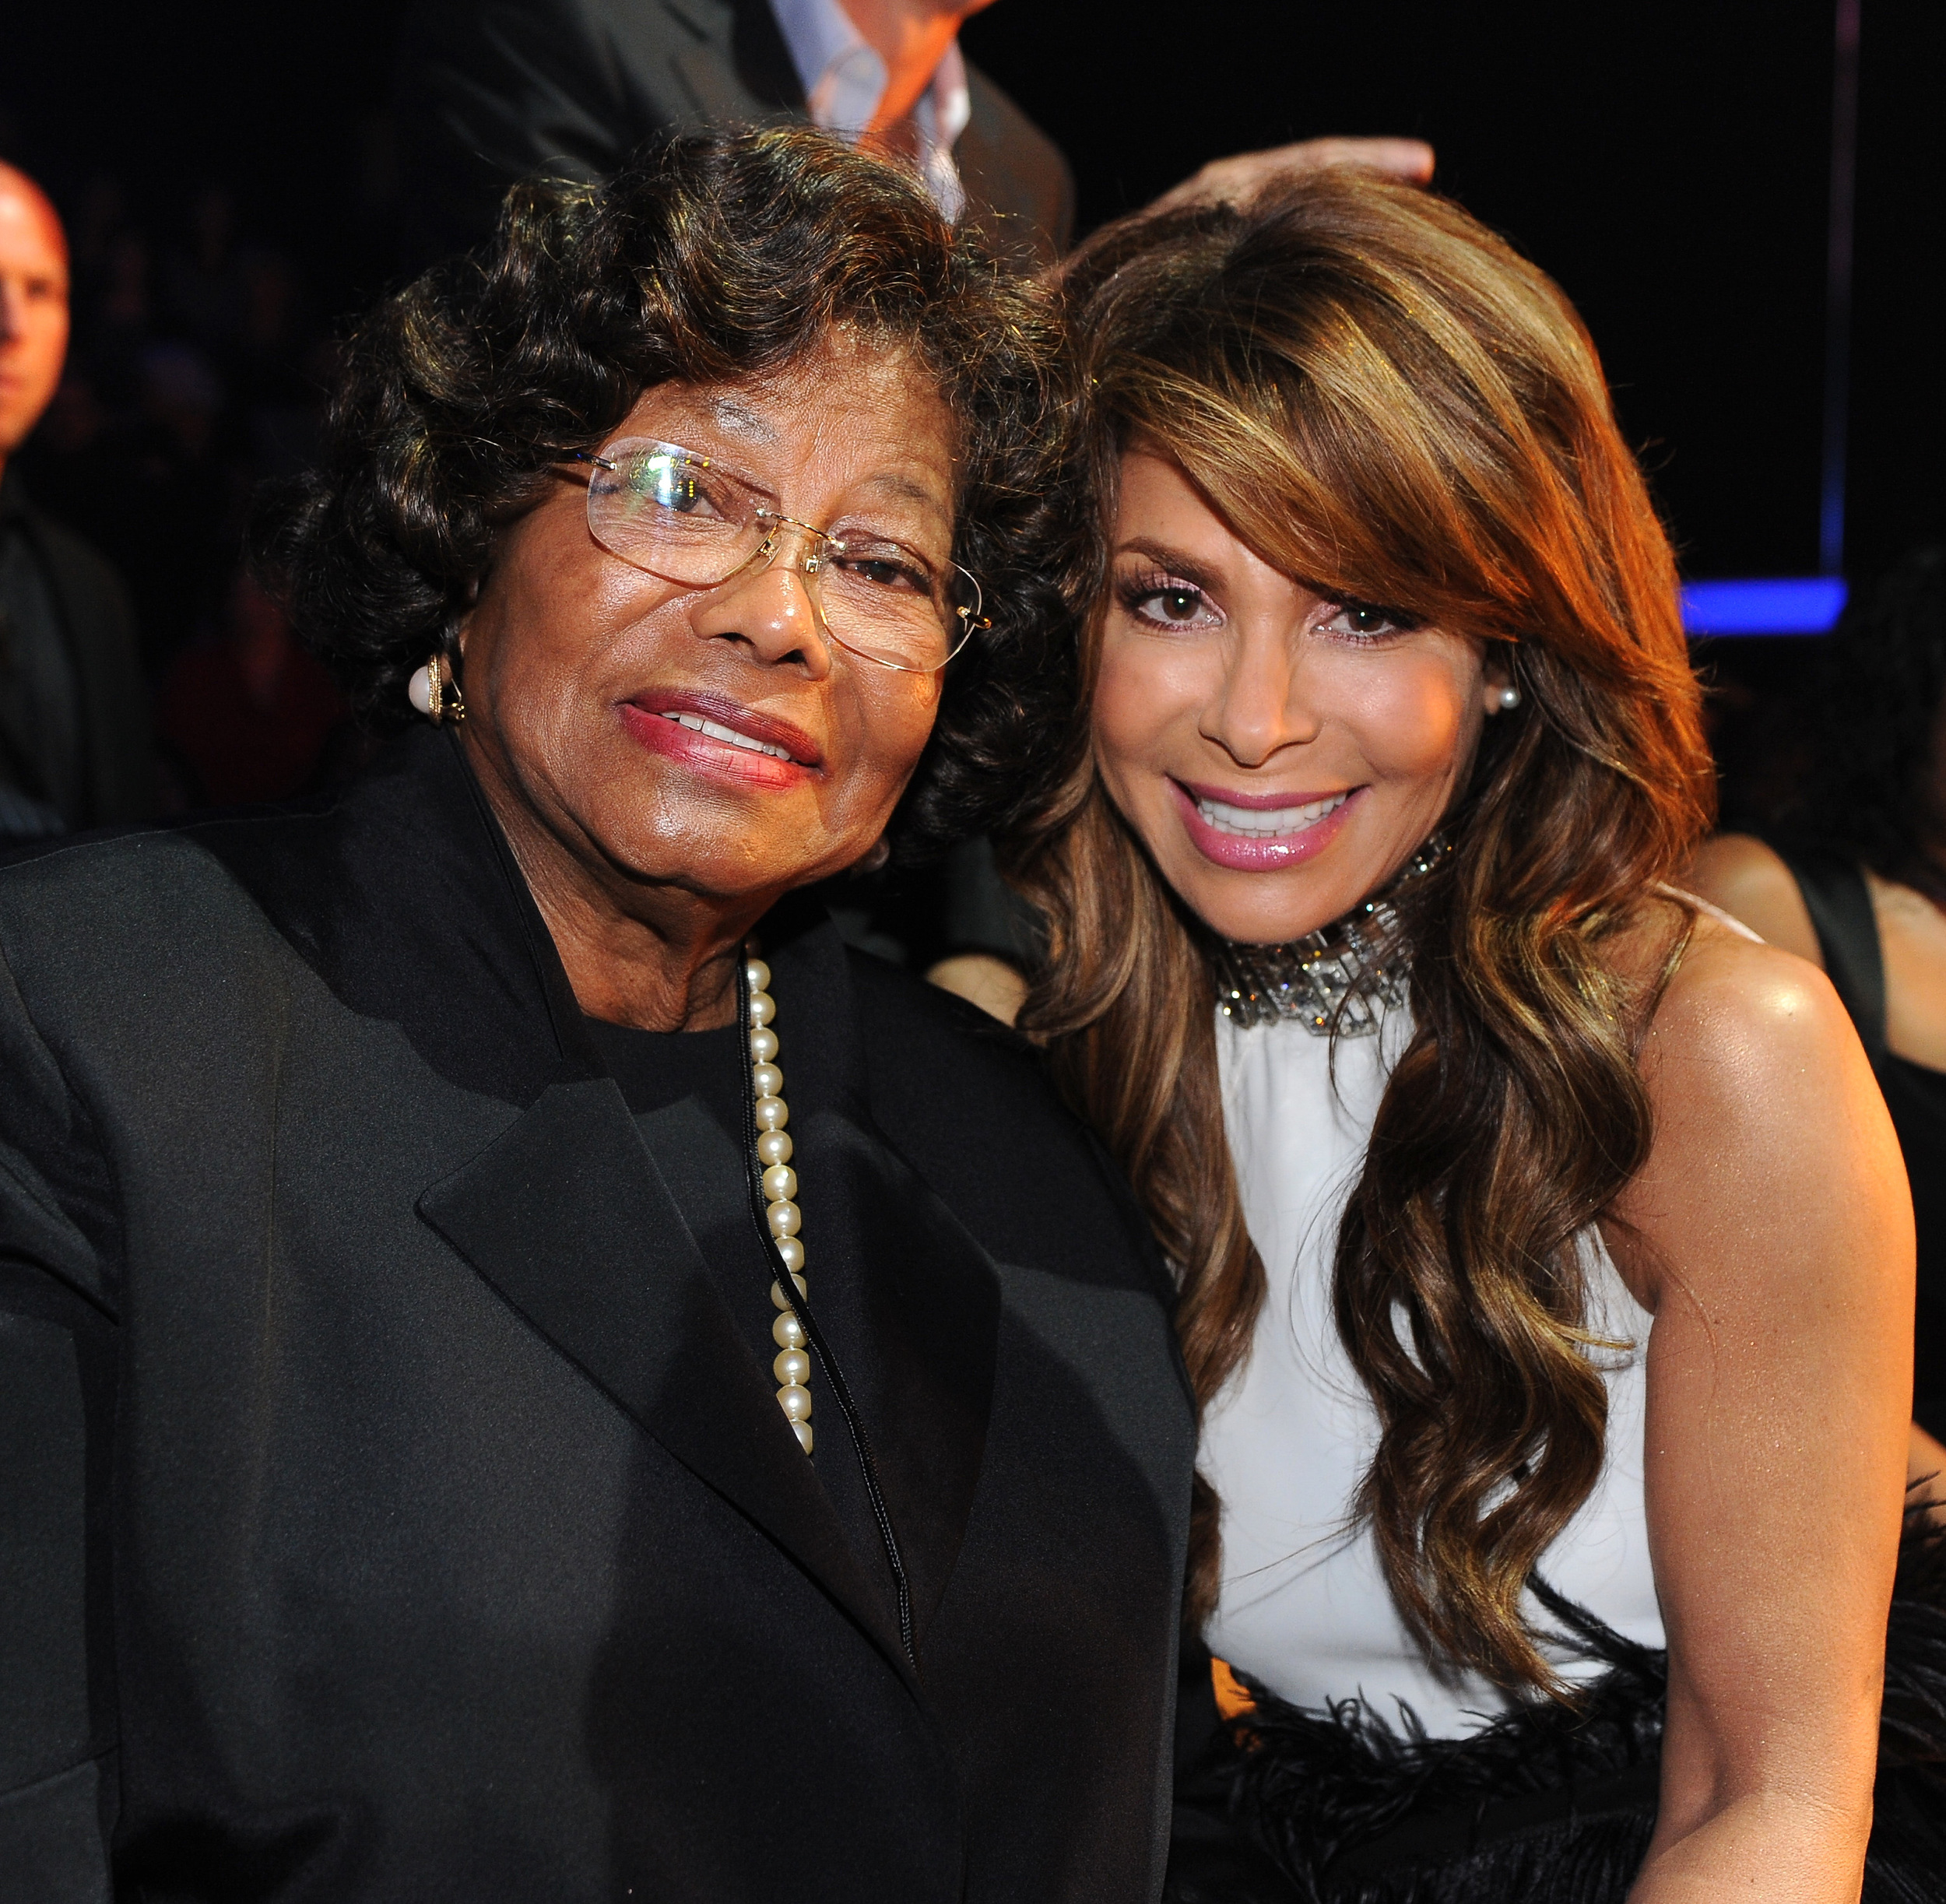 Health Crisis! Michael Jackson's mother Katherine suffers another stroke, sources claim